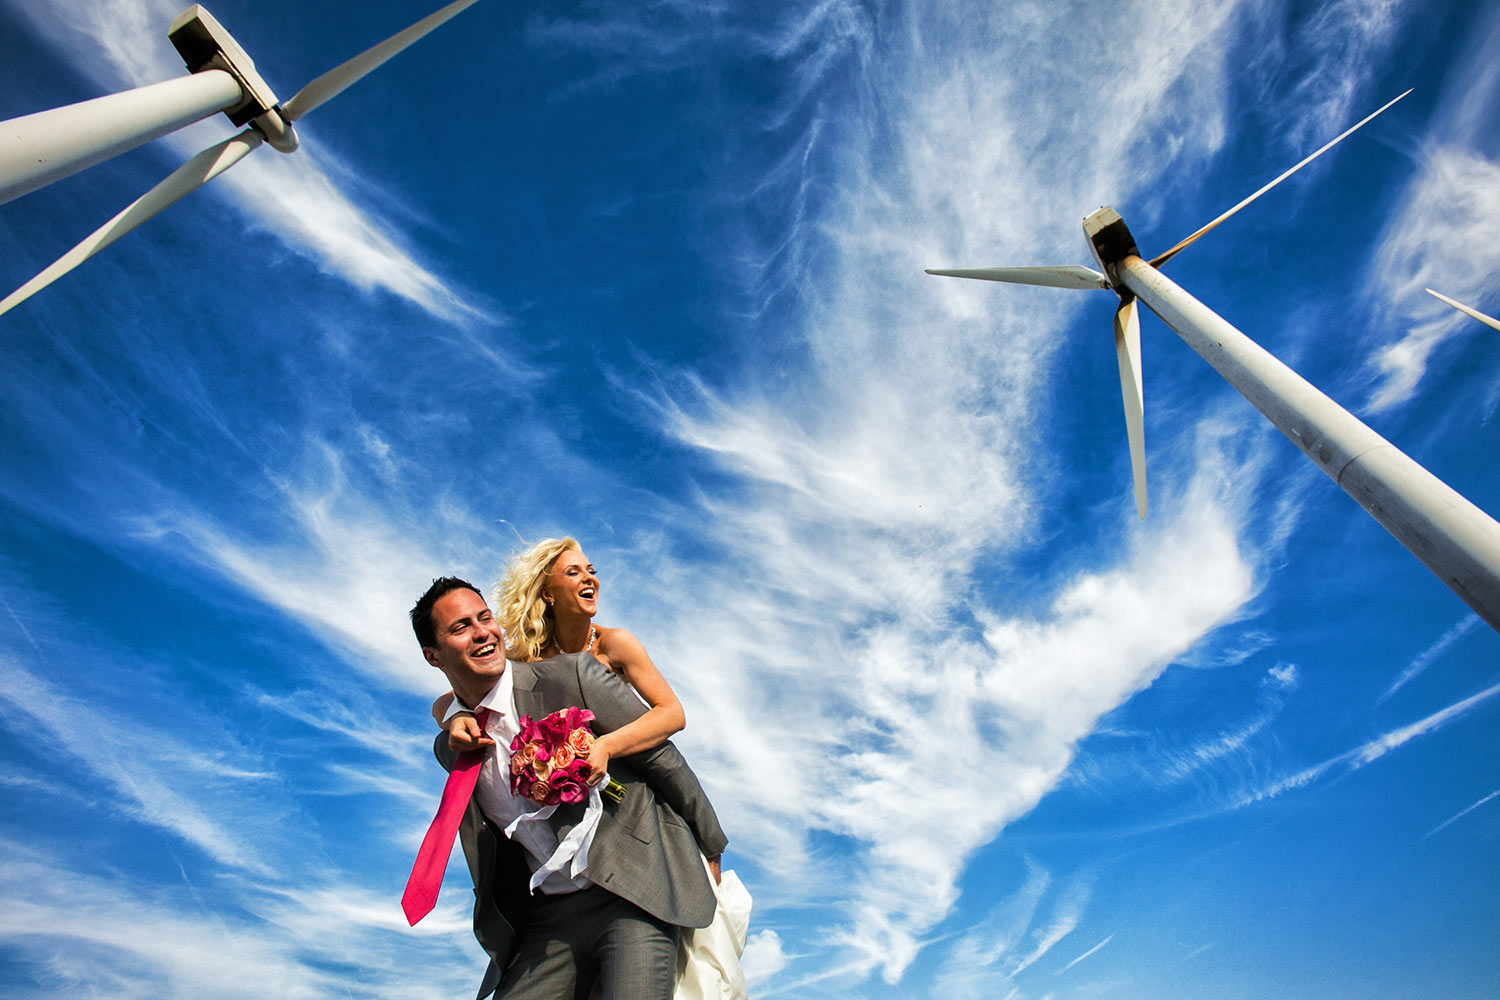 Upbeat couple playing in a wind farm field - photo by Callaway Gable